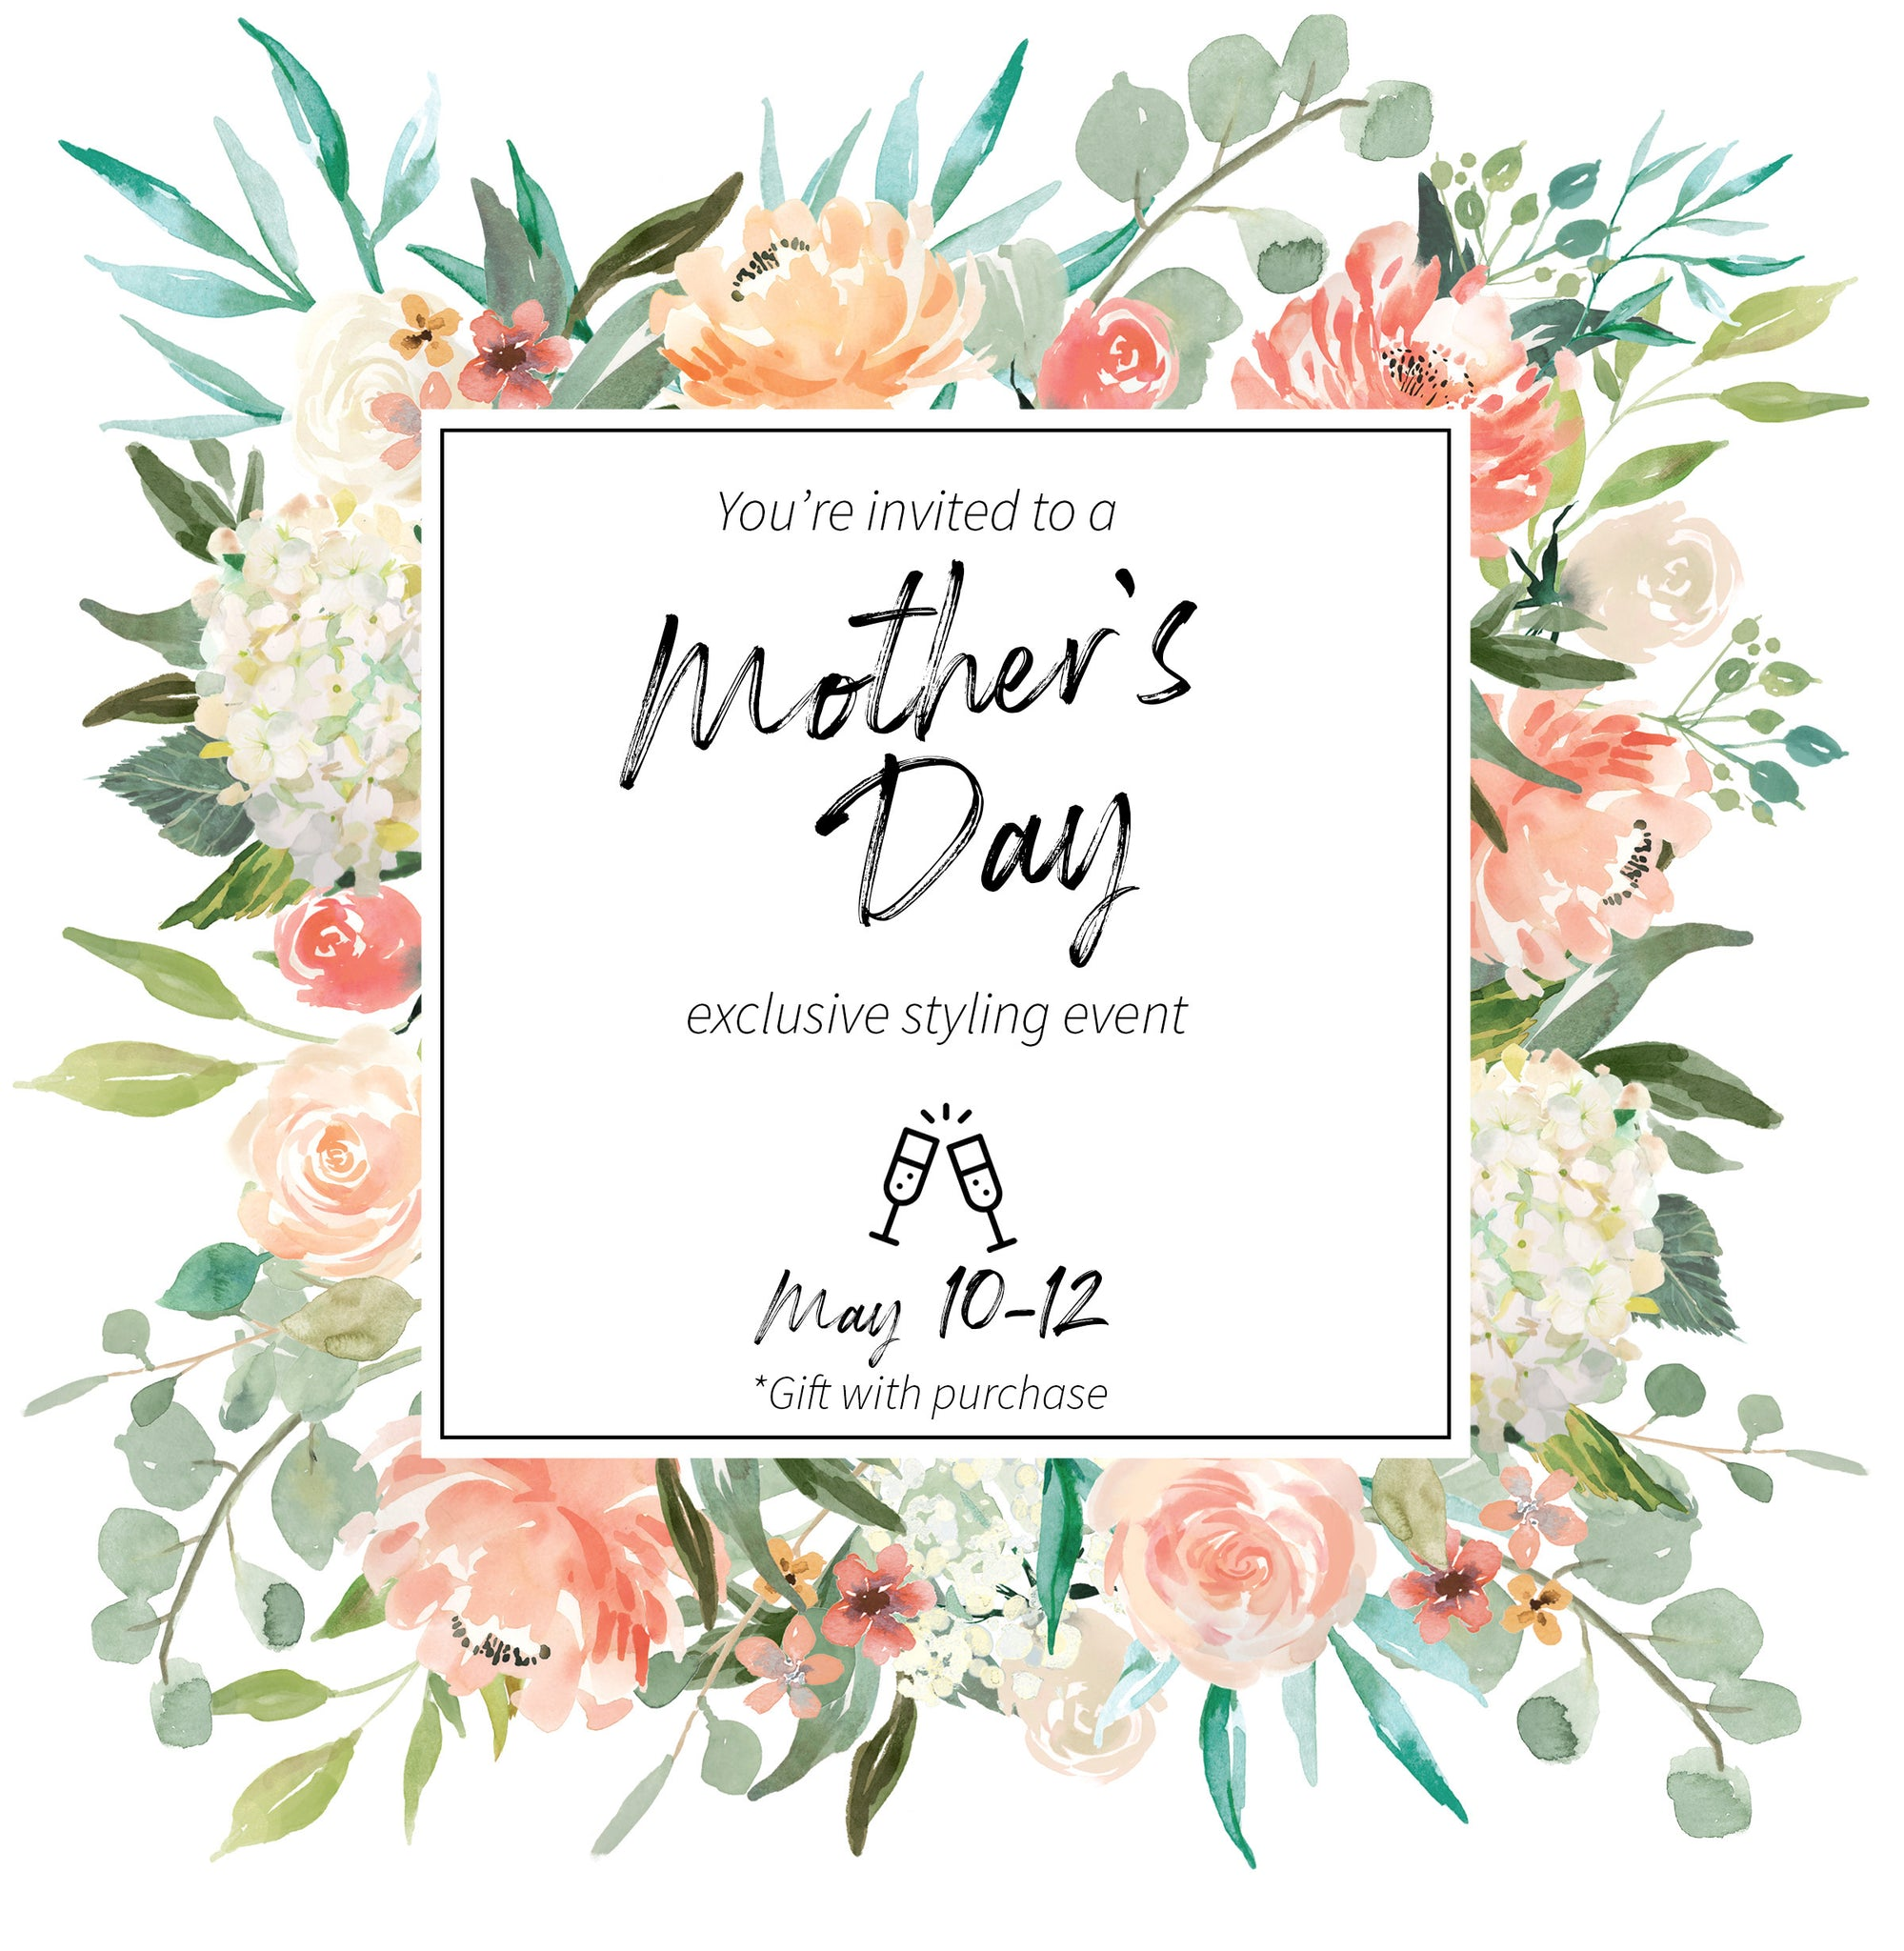 Mother's Day 2019 at Purpose Boutique